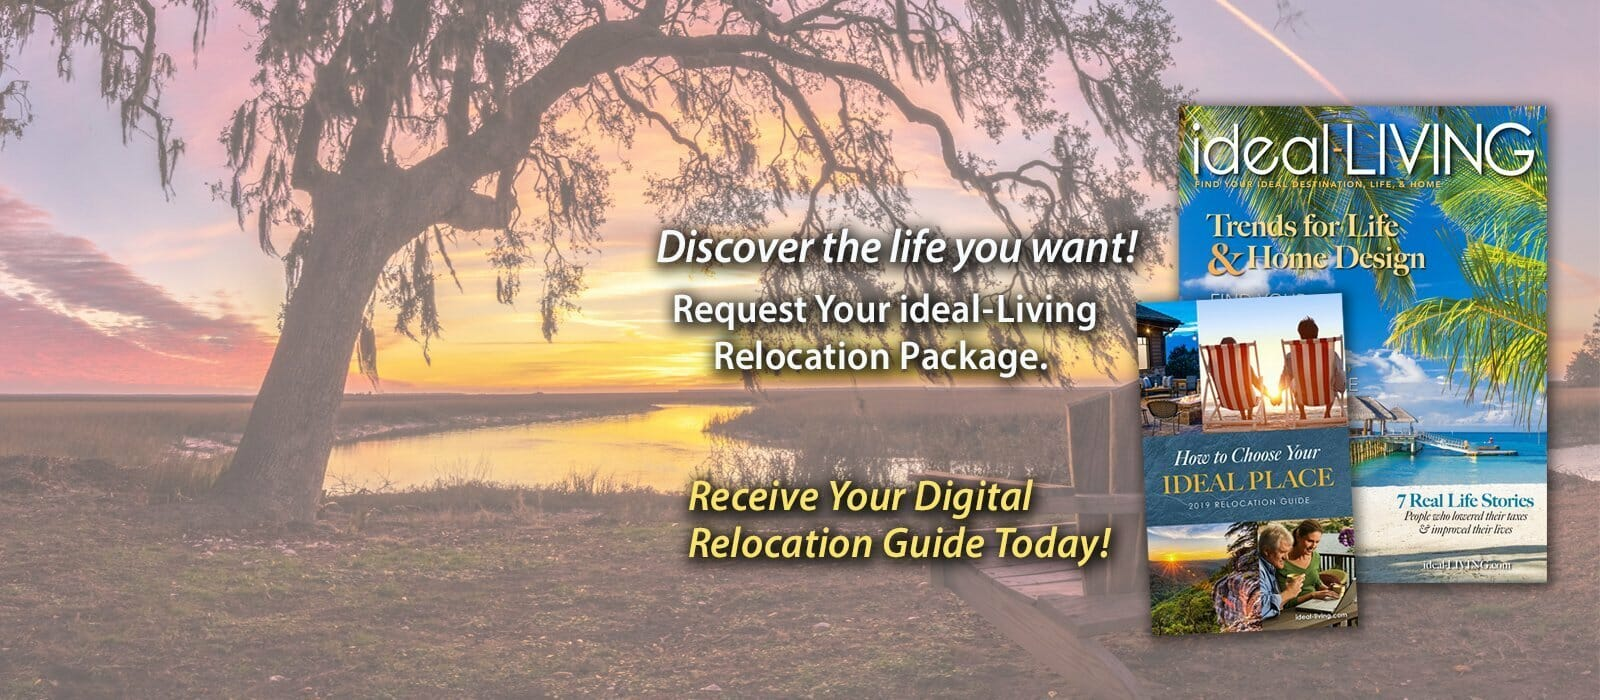 Request your ideal-LIVING Relocation Package Today!